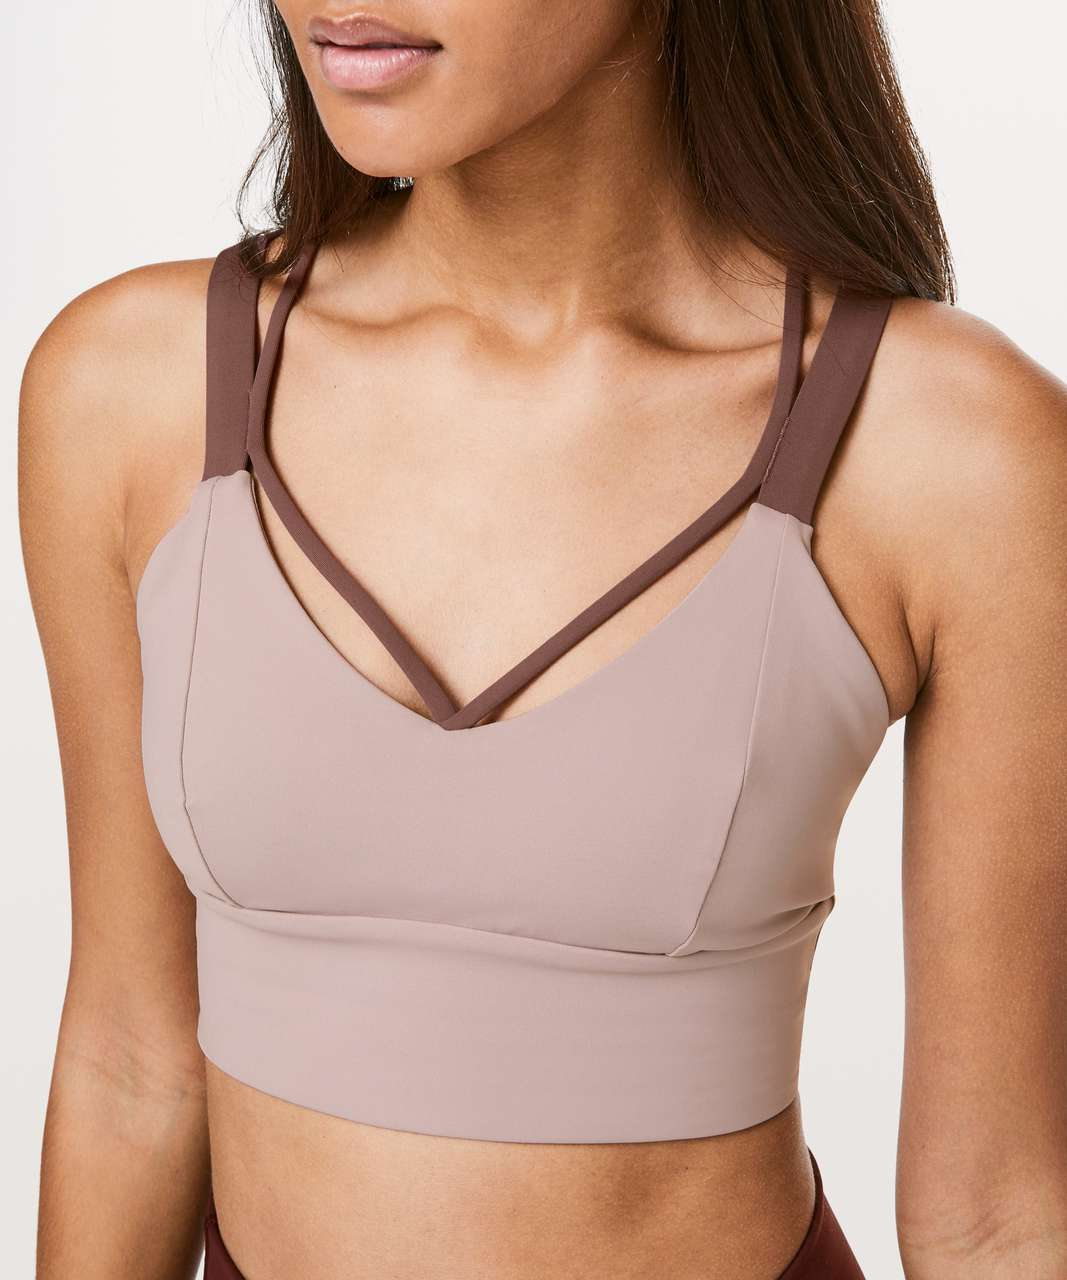 Lululemon Pushing Limits Bra *Light Support For C/D Cup - Smoky Blush / Antique Bark